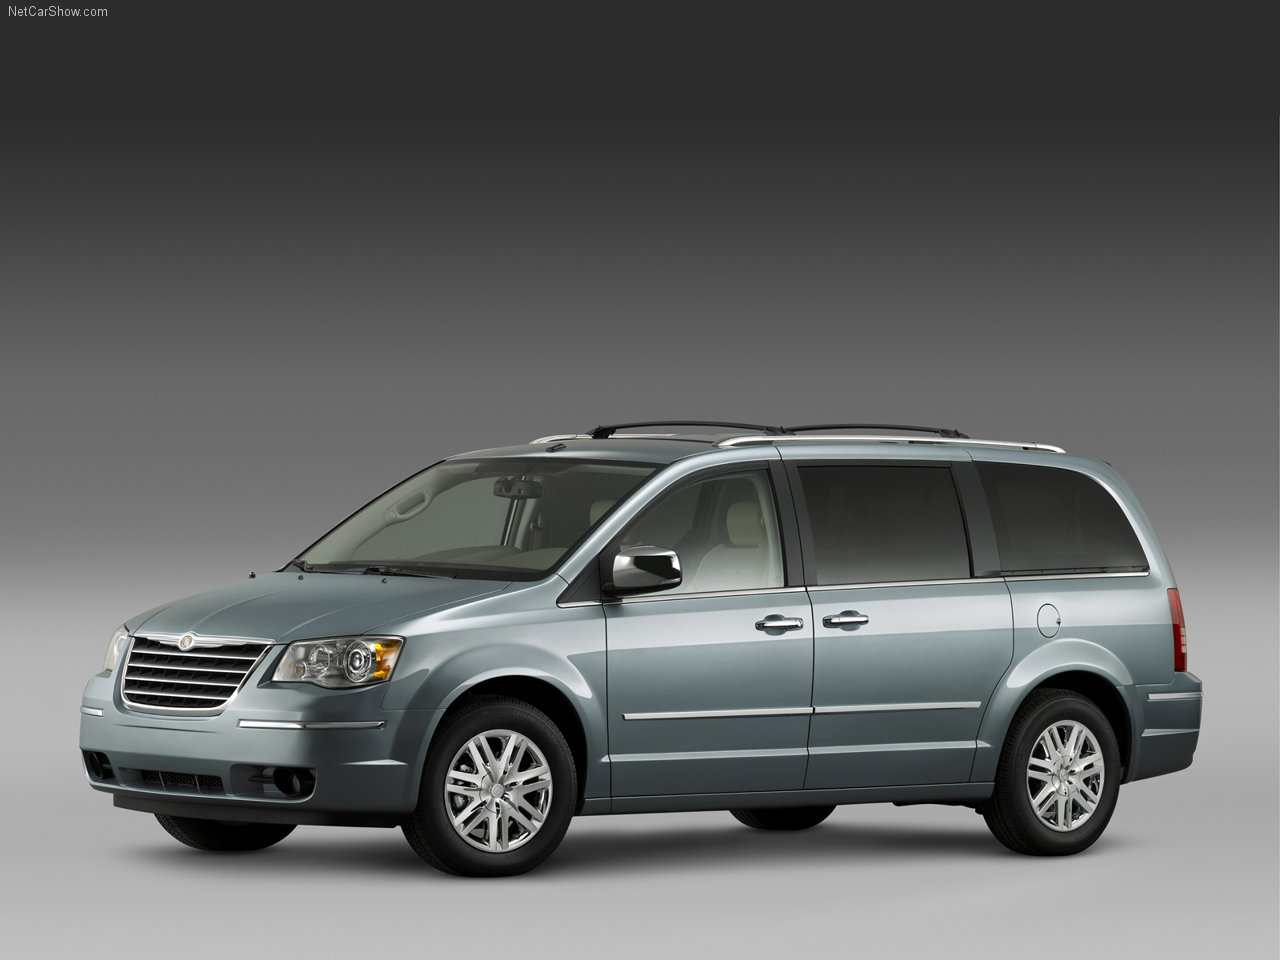 chrysler-town_and_country-2008-1280-01.jpg